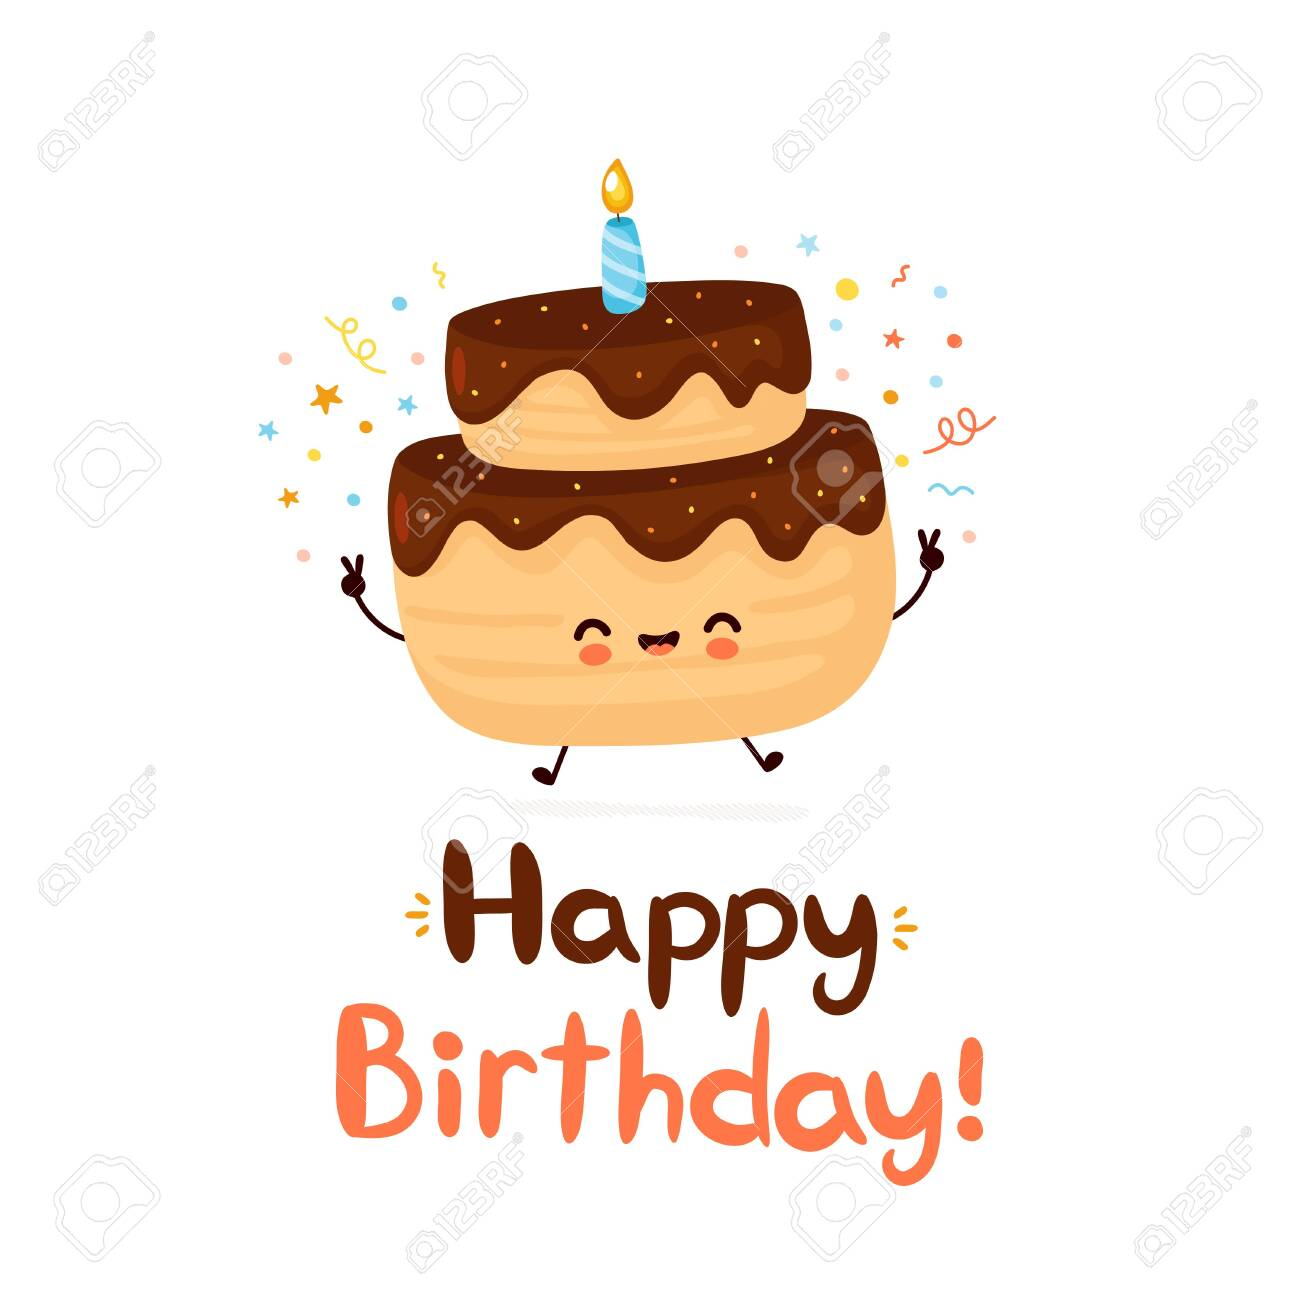 Cute Happy Cake With One Candle Happy Birthday Hand Drawn Style Royalty Free Cliparts Vectors And Stock Illustration Image 139747348